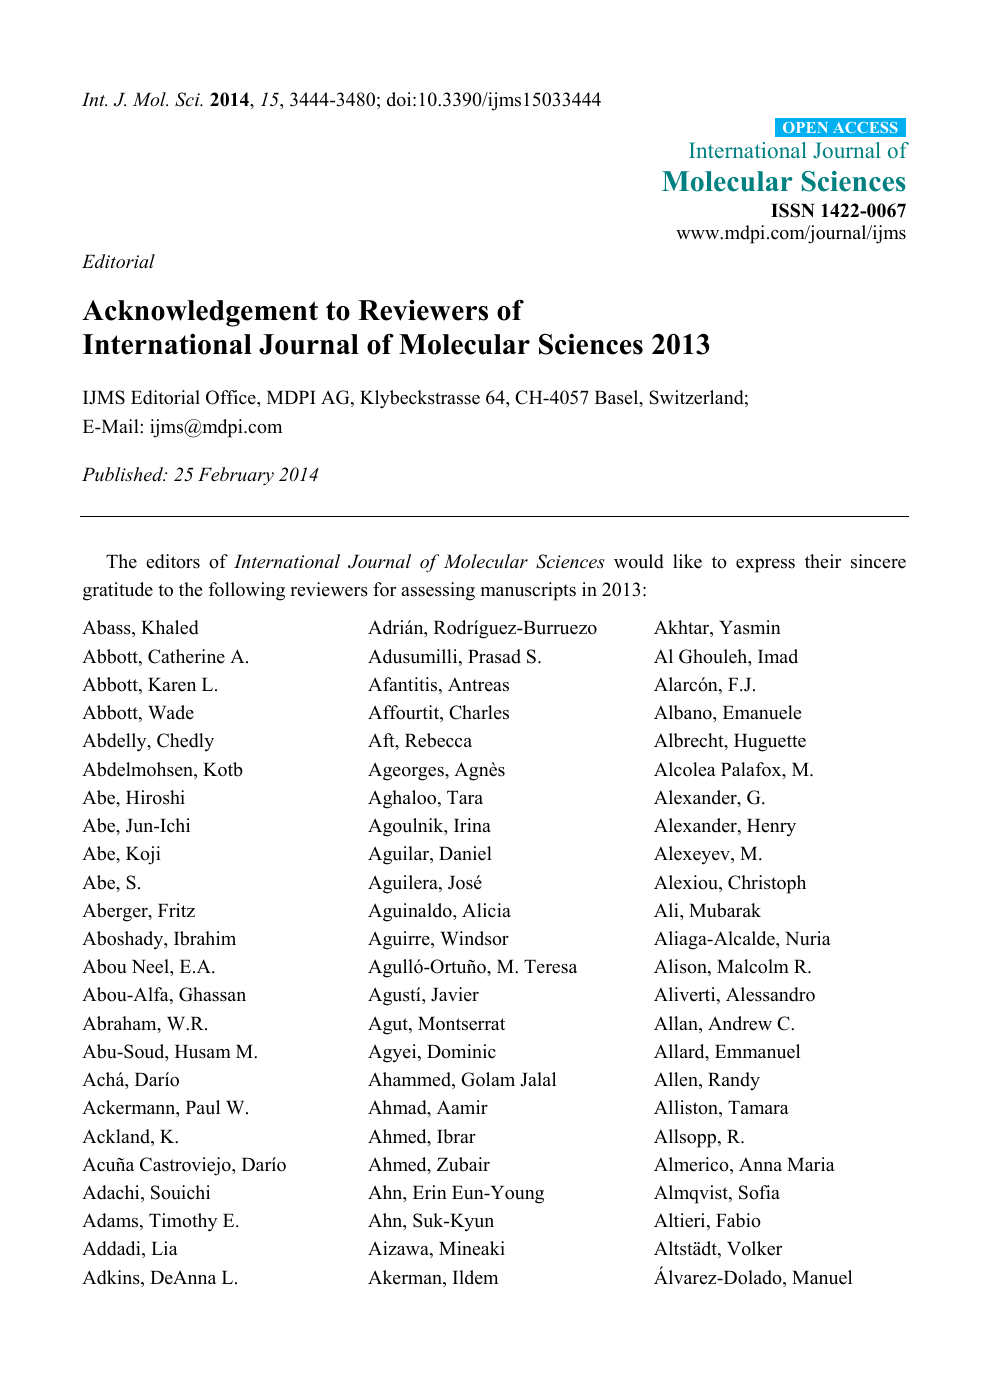 2ba329fe70 Acknowledgement to Reviewers of International Journal of Molecular ...